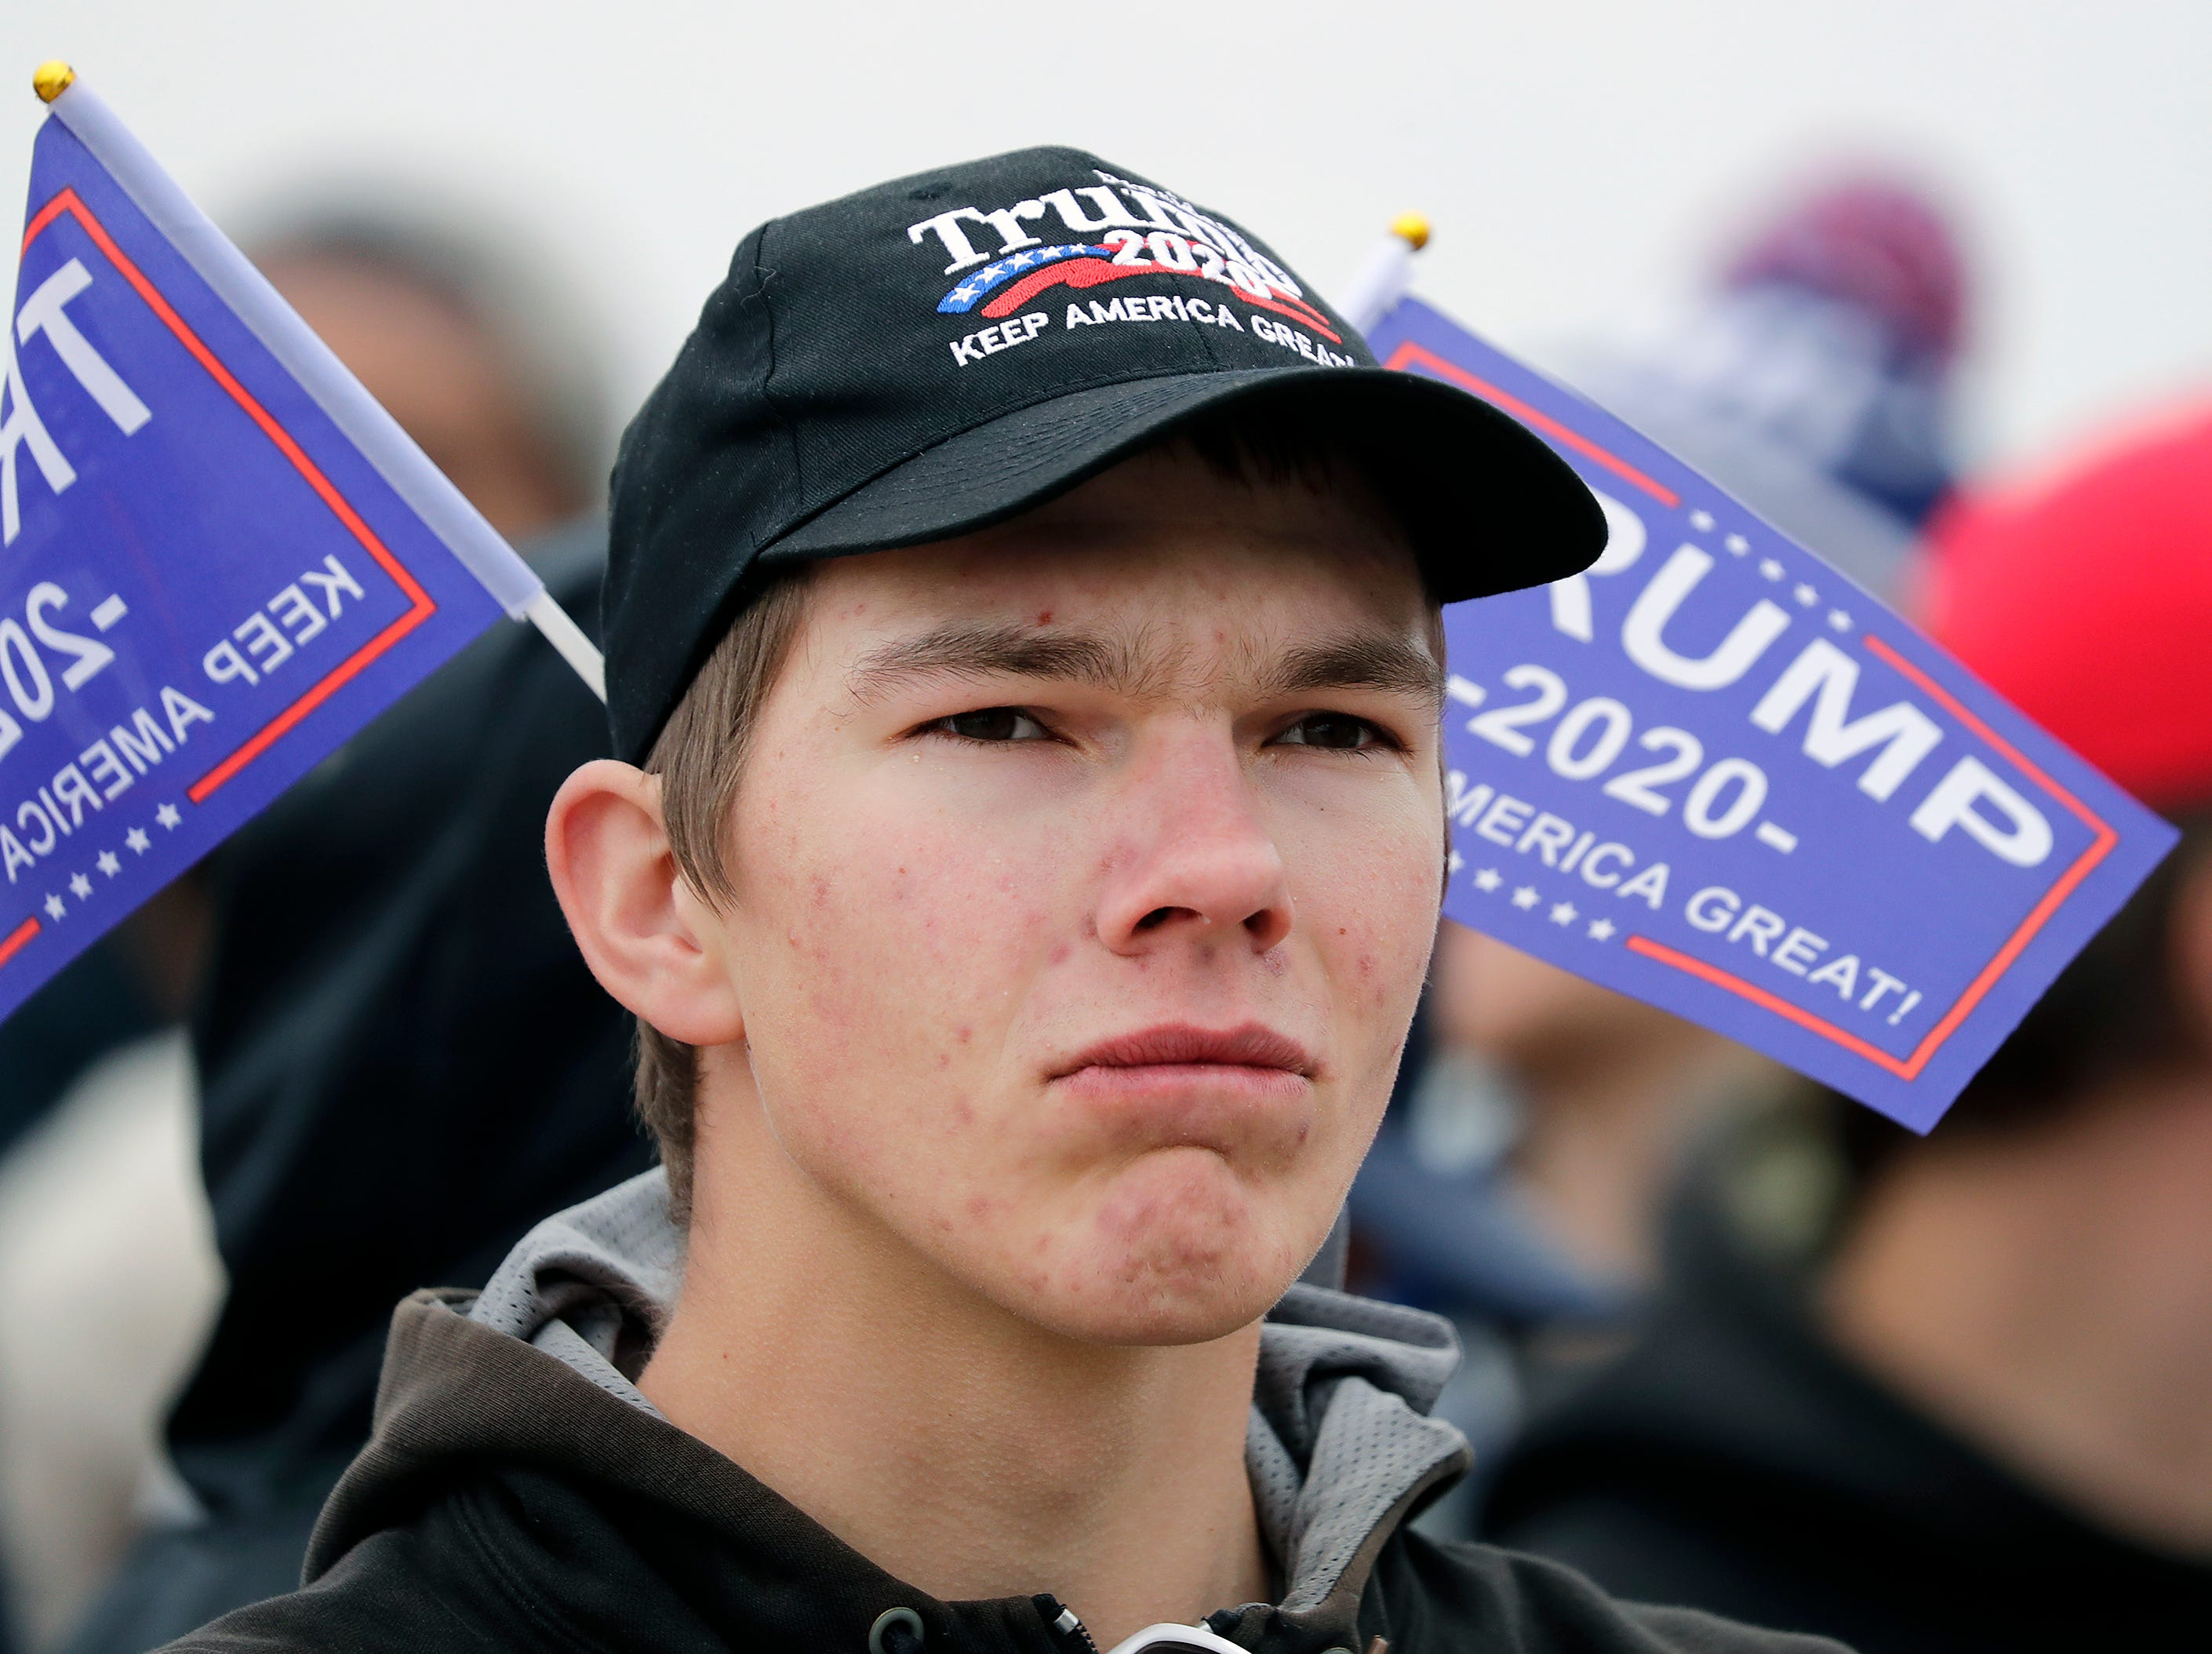 Ted Mortberg waits in line before President Donald J. TrumpÕs Make America Great Again Rally on Saturday, April 27, 2019, at the Resch Center in Green Bay, Wis.